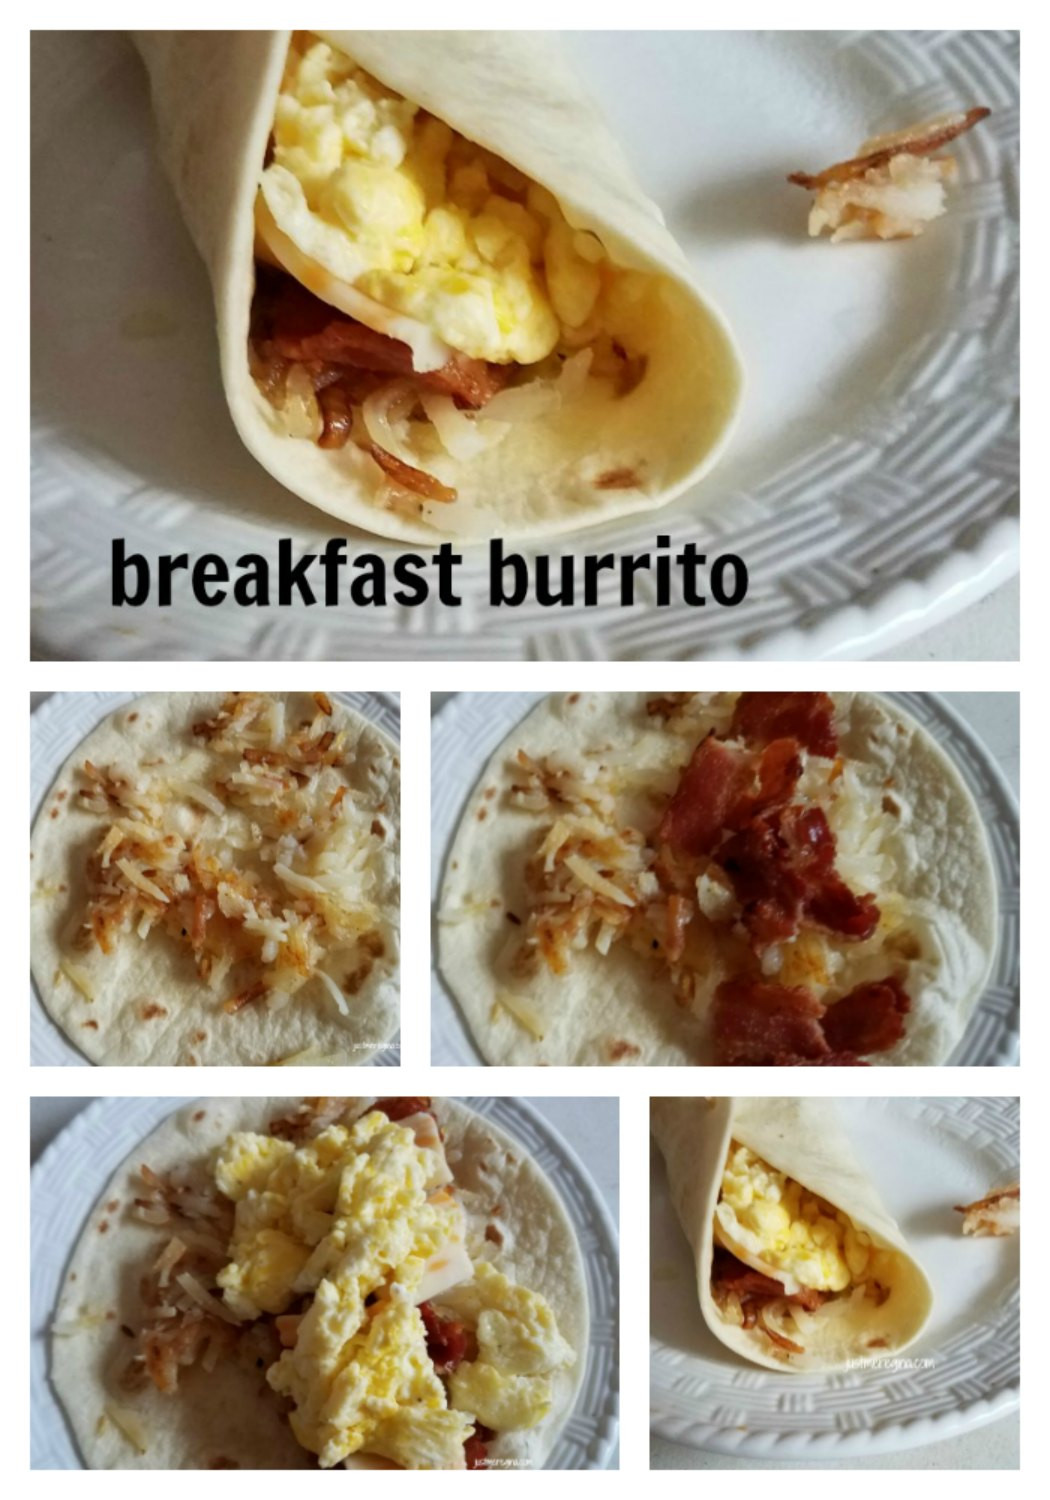 Homemade Breakfast Burritos  homemade breakfast burritos recipe Just Me Regina